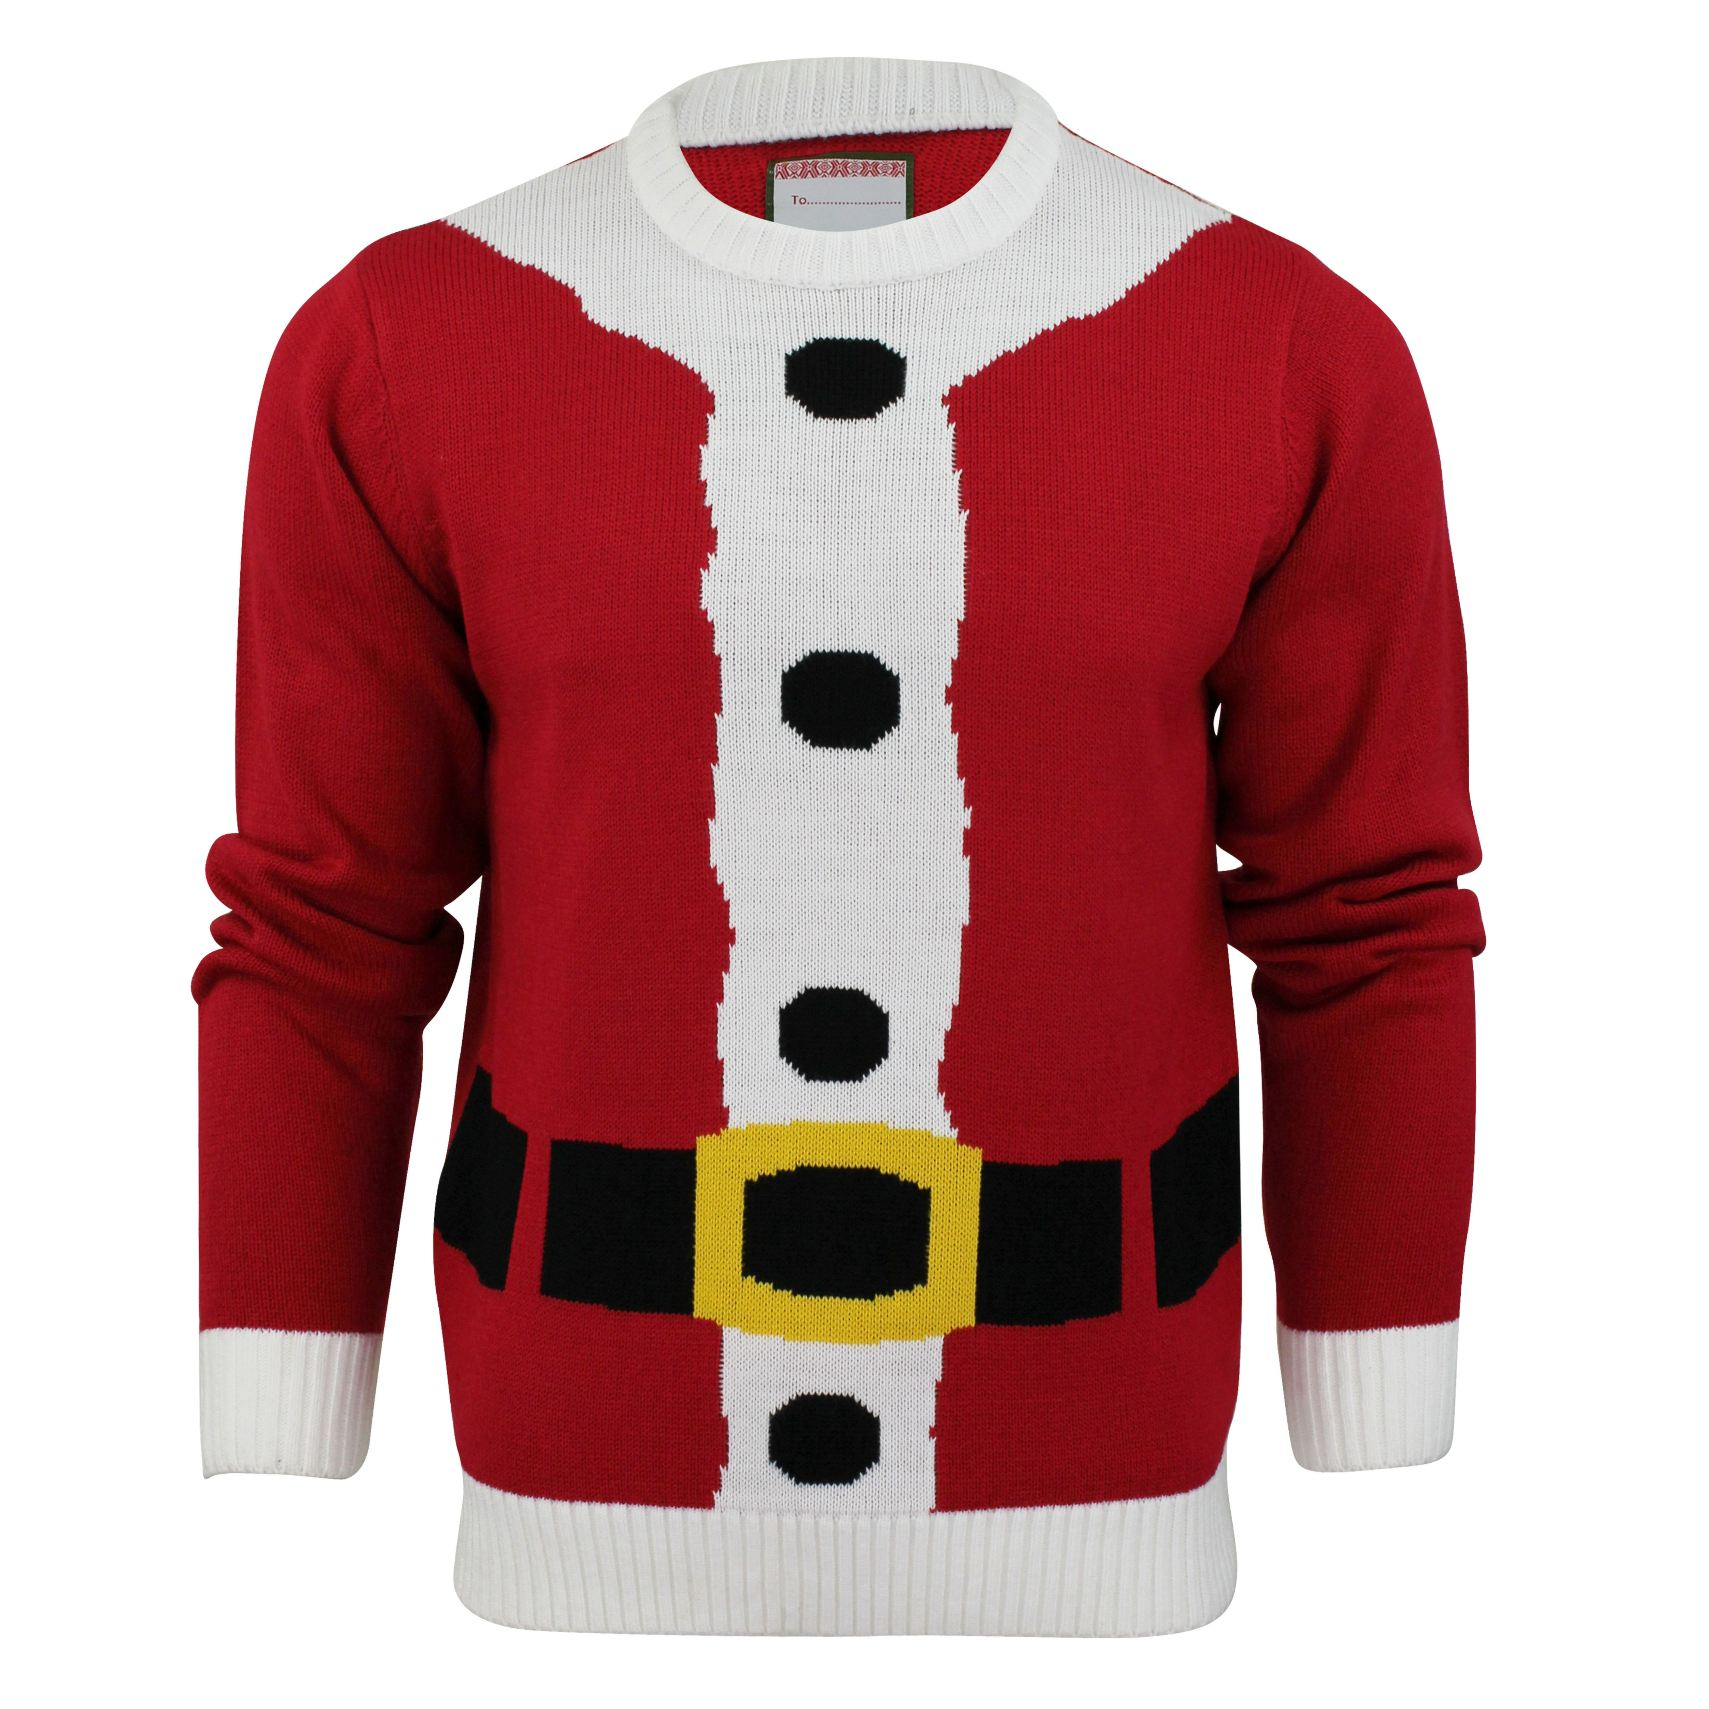 Breaking news: men's Christmas jumpers just got more hysterical. Yes, they also became more tasteless. But that's just the price you pay for being at the top of the fashion chain when it comes to ugly Christmas jumpers.